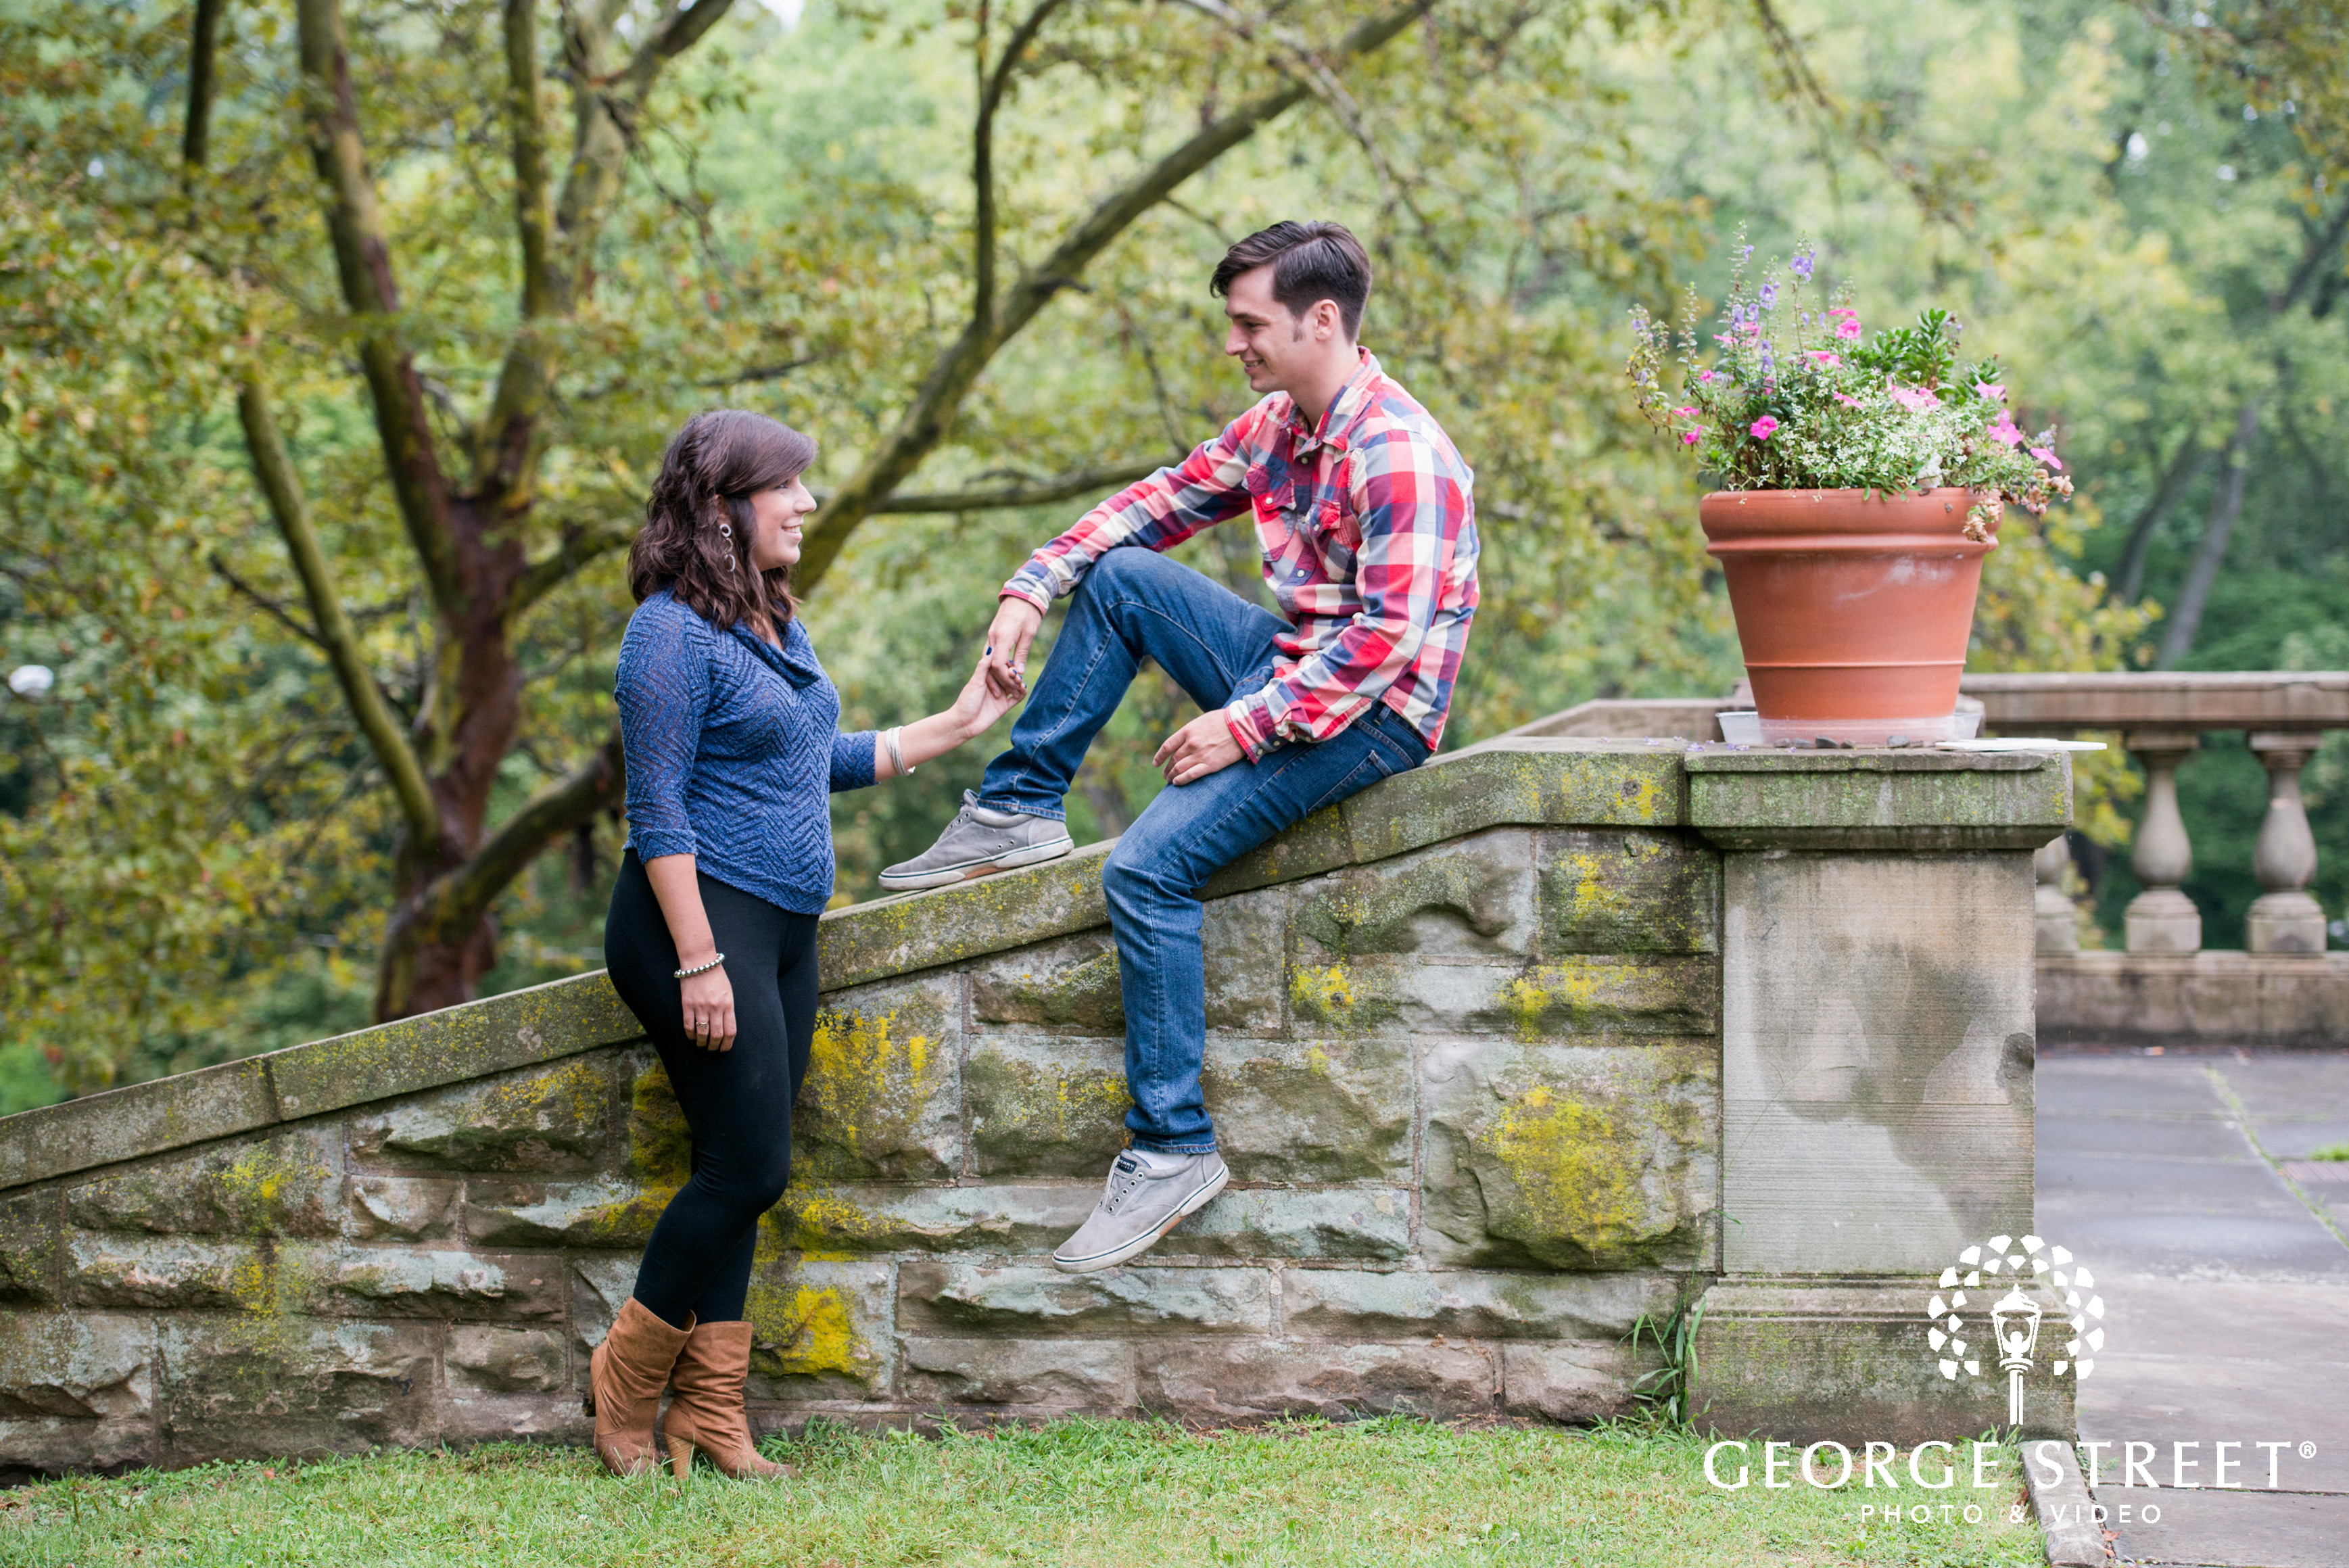 George Street's Top 3 Engagement Session Locations in Cleveland